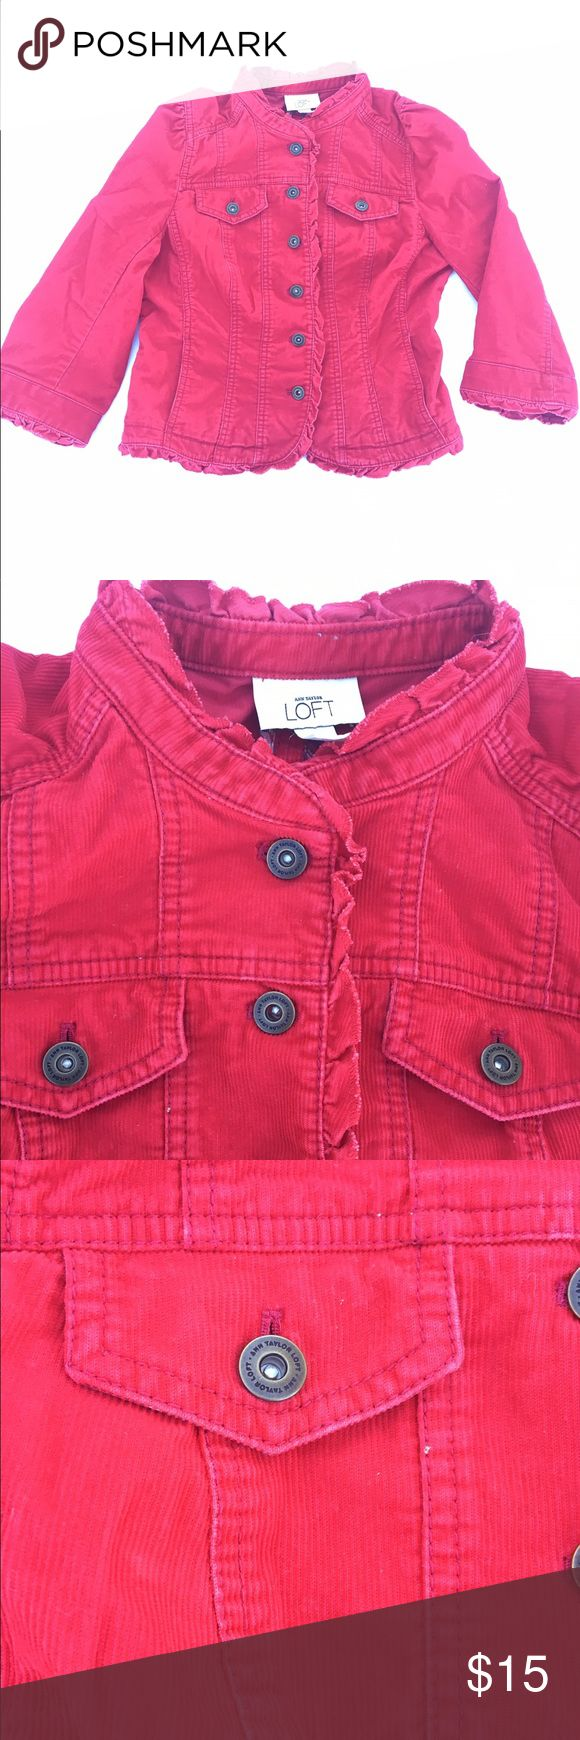 Anne Taylor loft long sleeve Stretch jacket Sz 6 Red • Long Sleeve • 6 buttons down the front • Stretch • Double chest pocket, slit pockets • Ruffled trim Ann Taylor Jackets & Coats